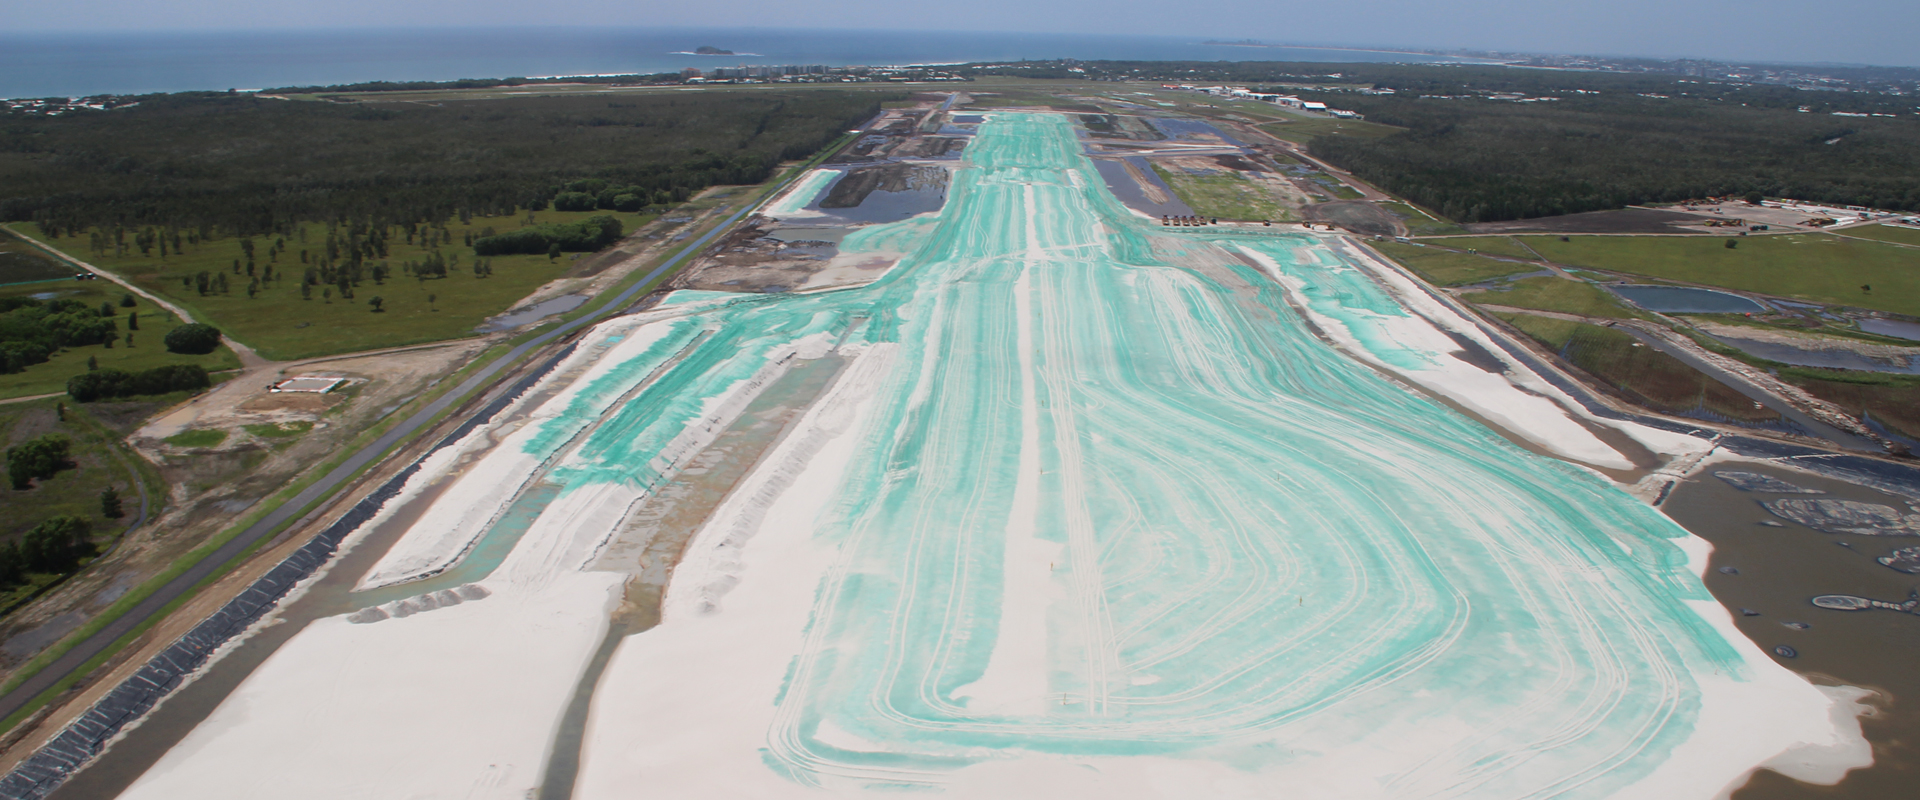 image of the airport expansion during the time construction sciences was working on the project